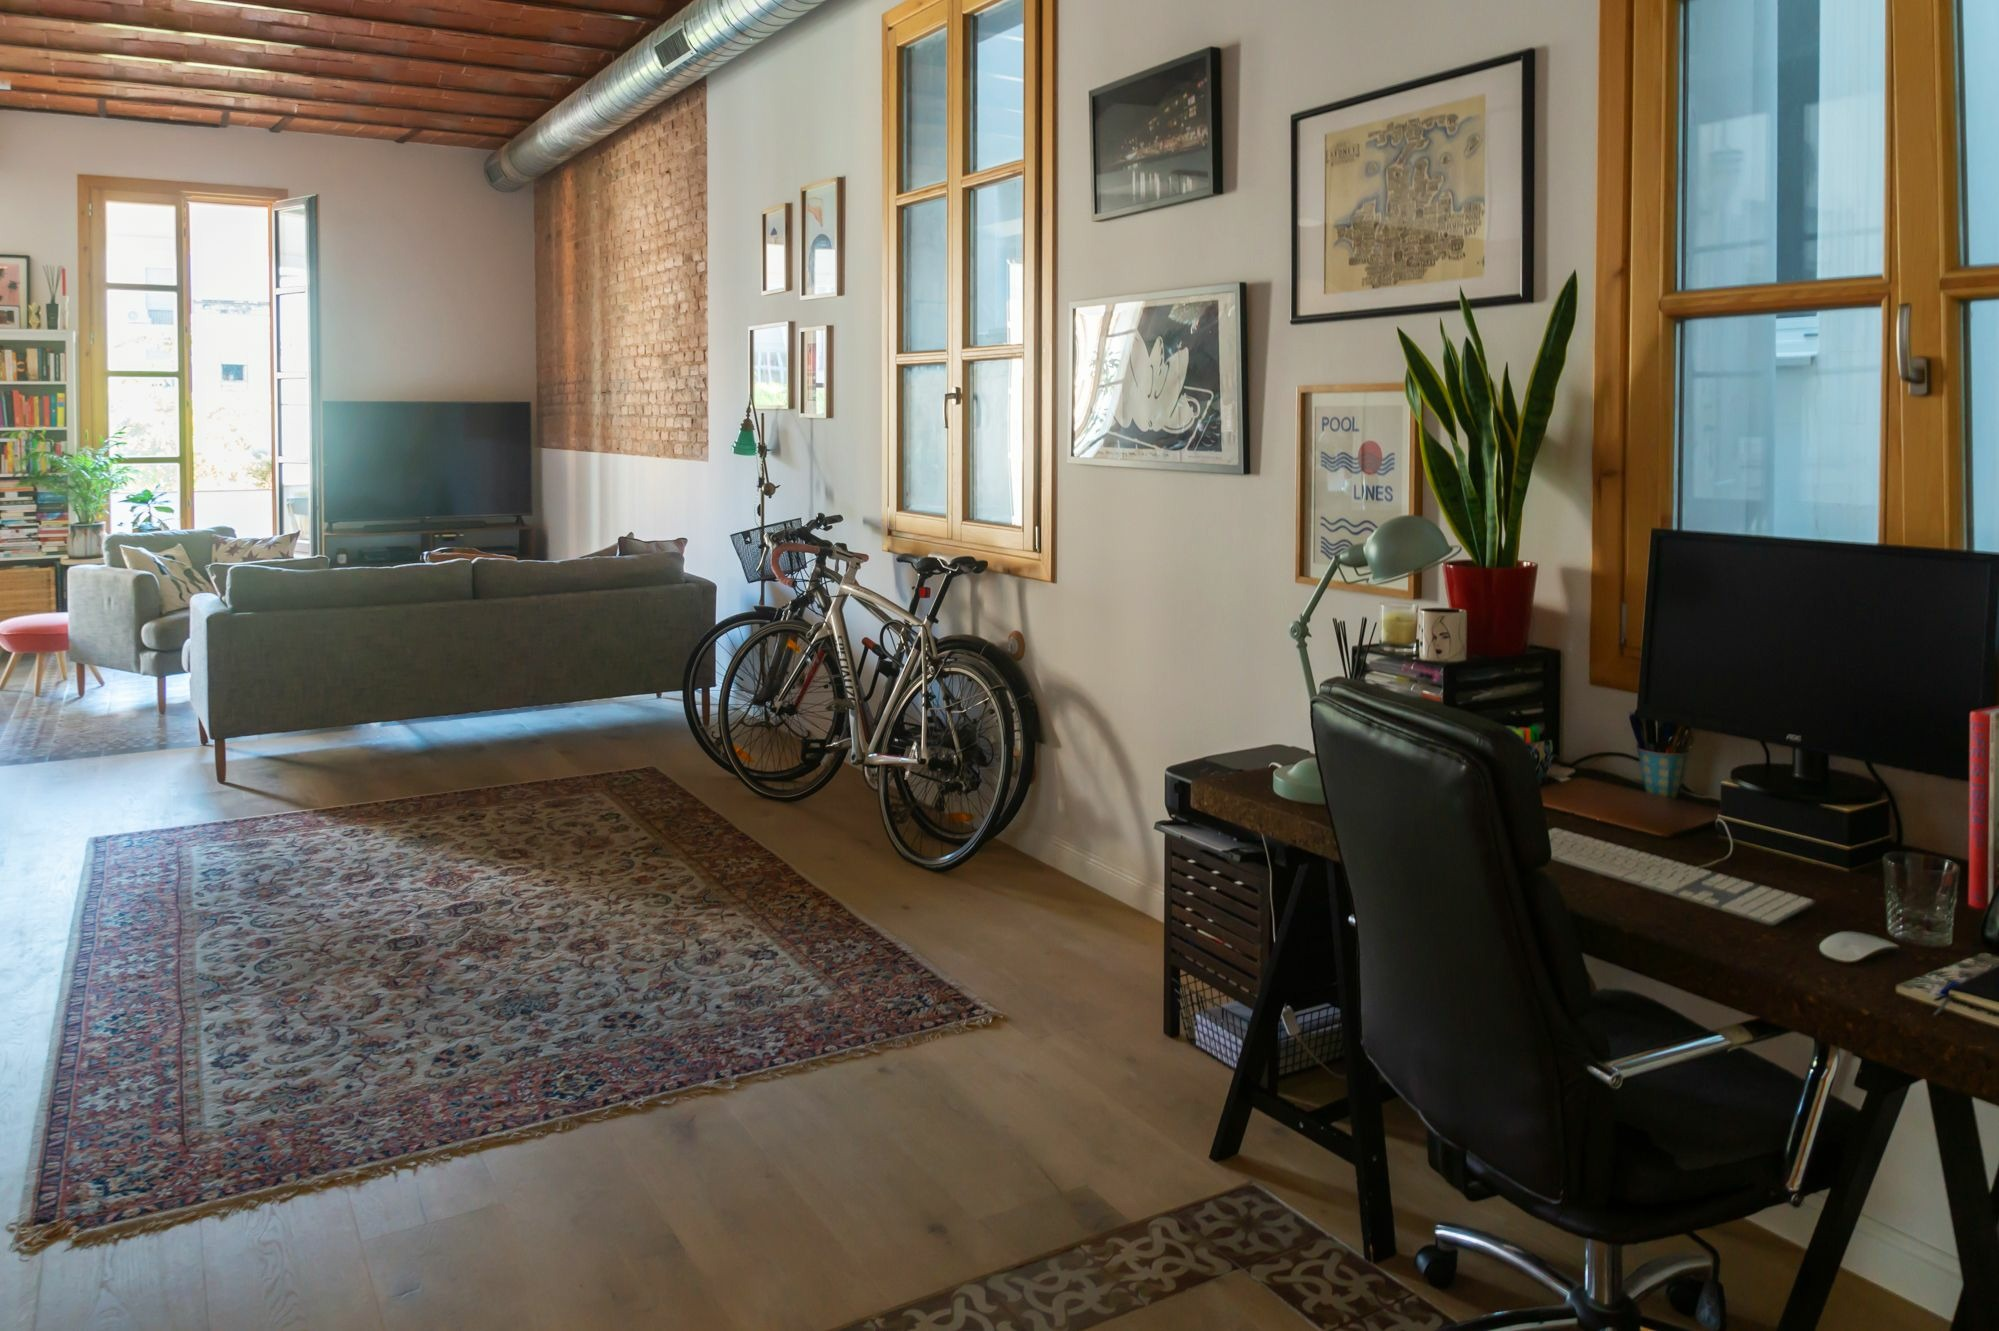 Gemma home tour Barcelona open space modernist style